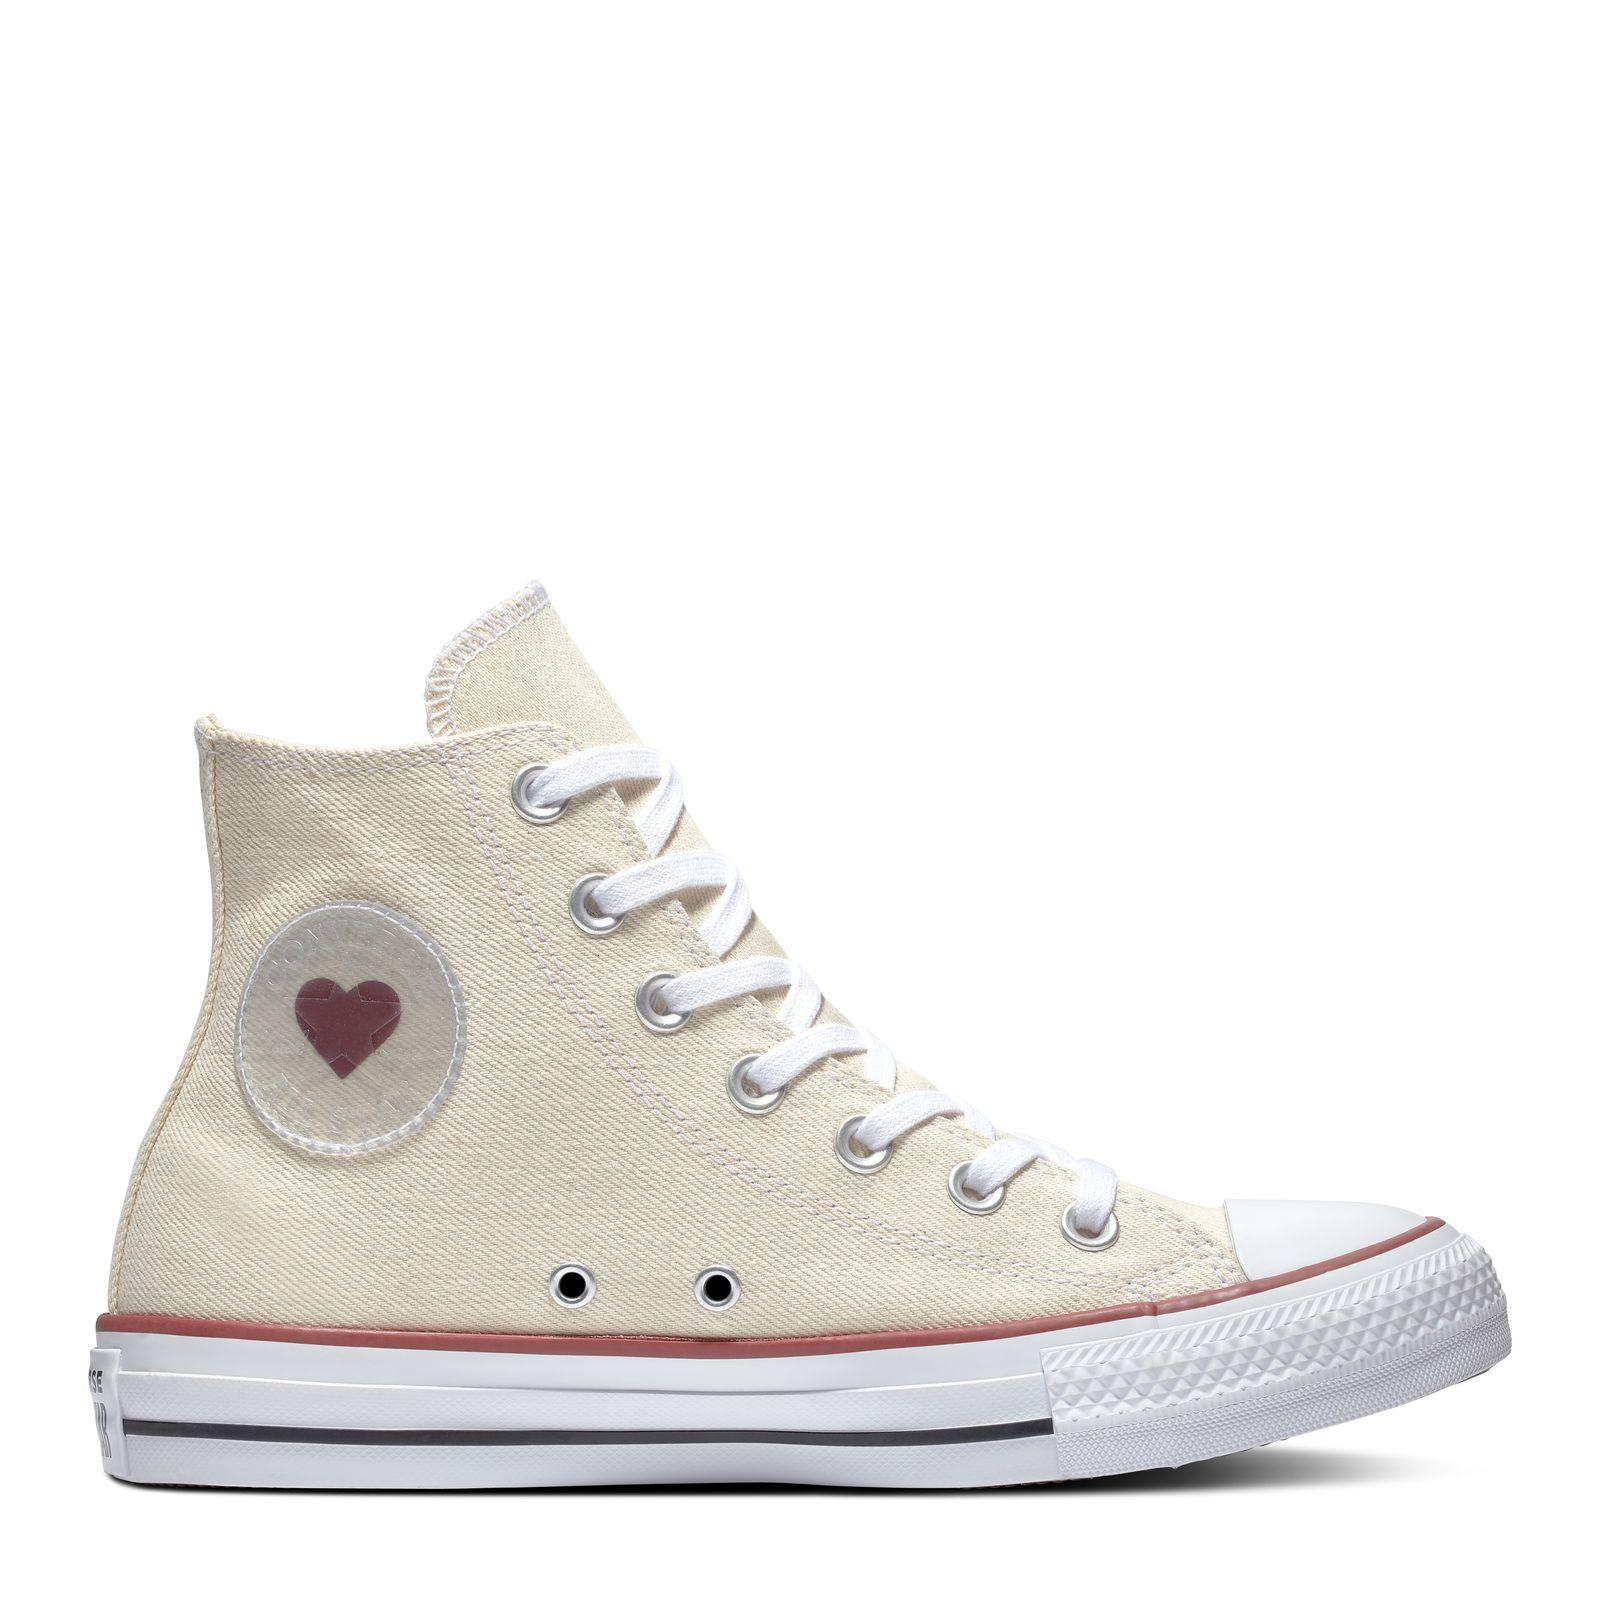 4ee93eb28e1645 CONVERSE CHUCK TAYLOR ALL STAR DENIM LOVE HI - NATURAL WHITE GARNET -  163304C